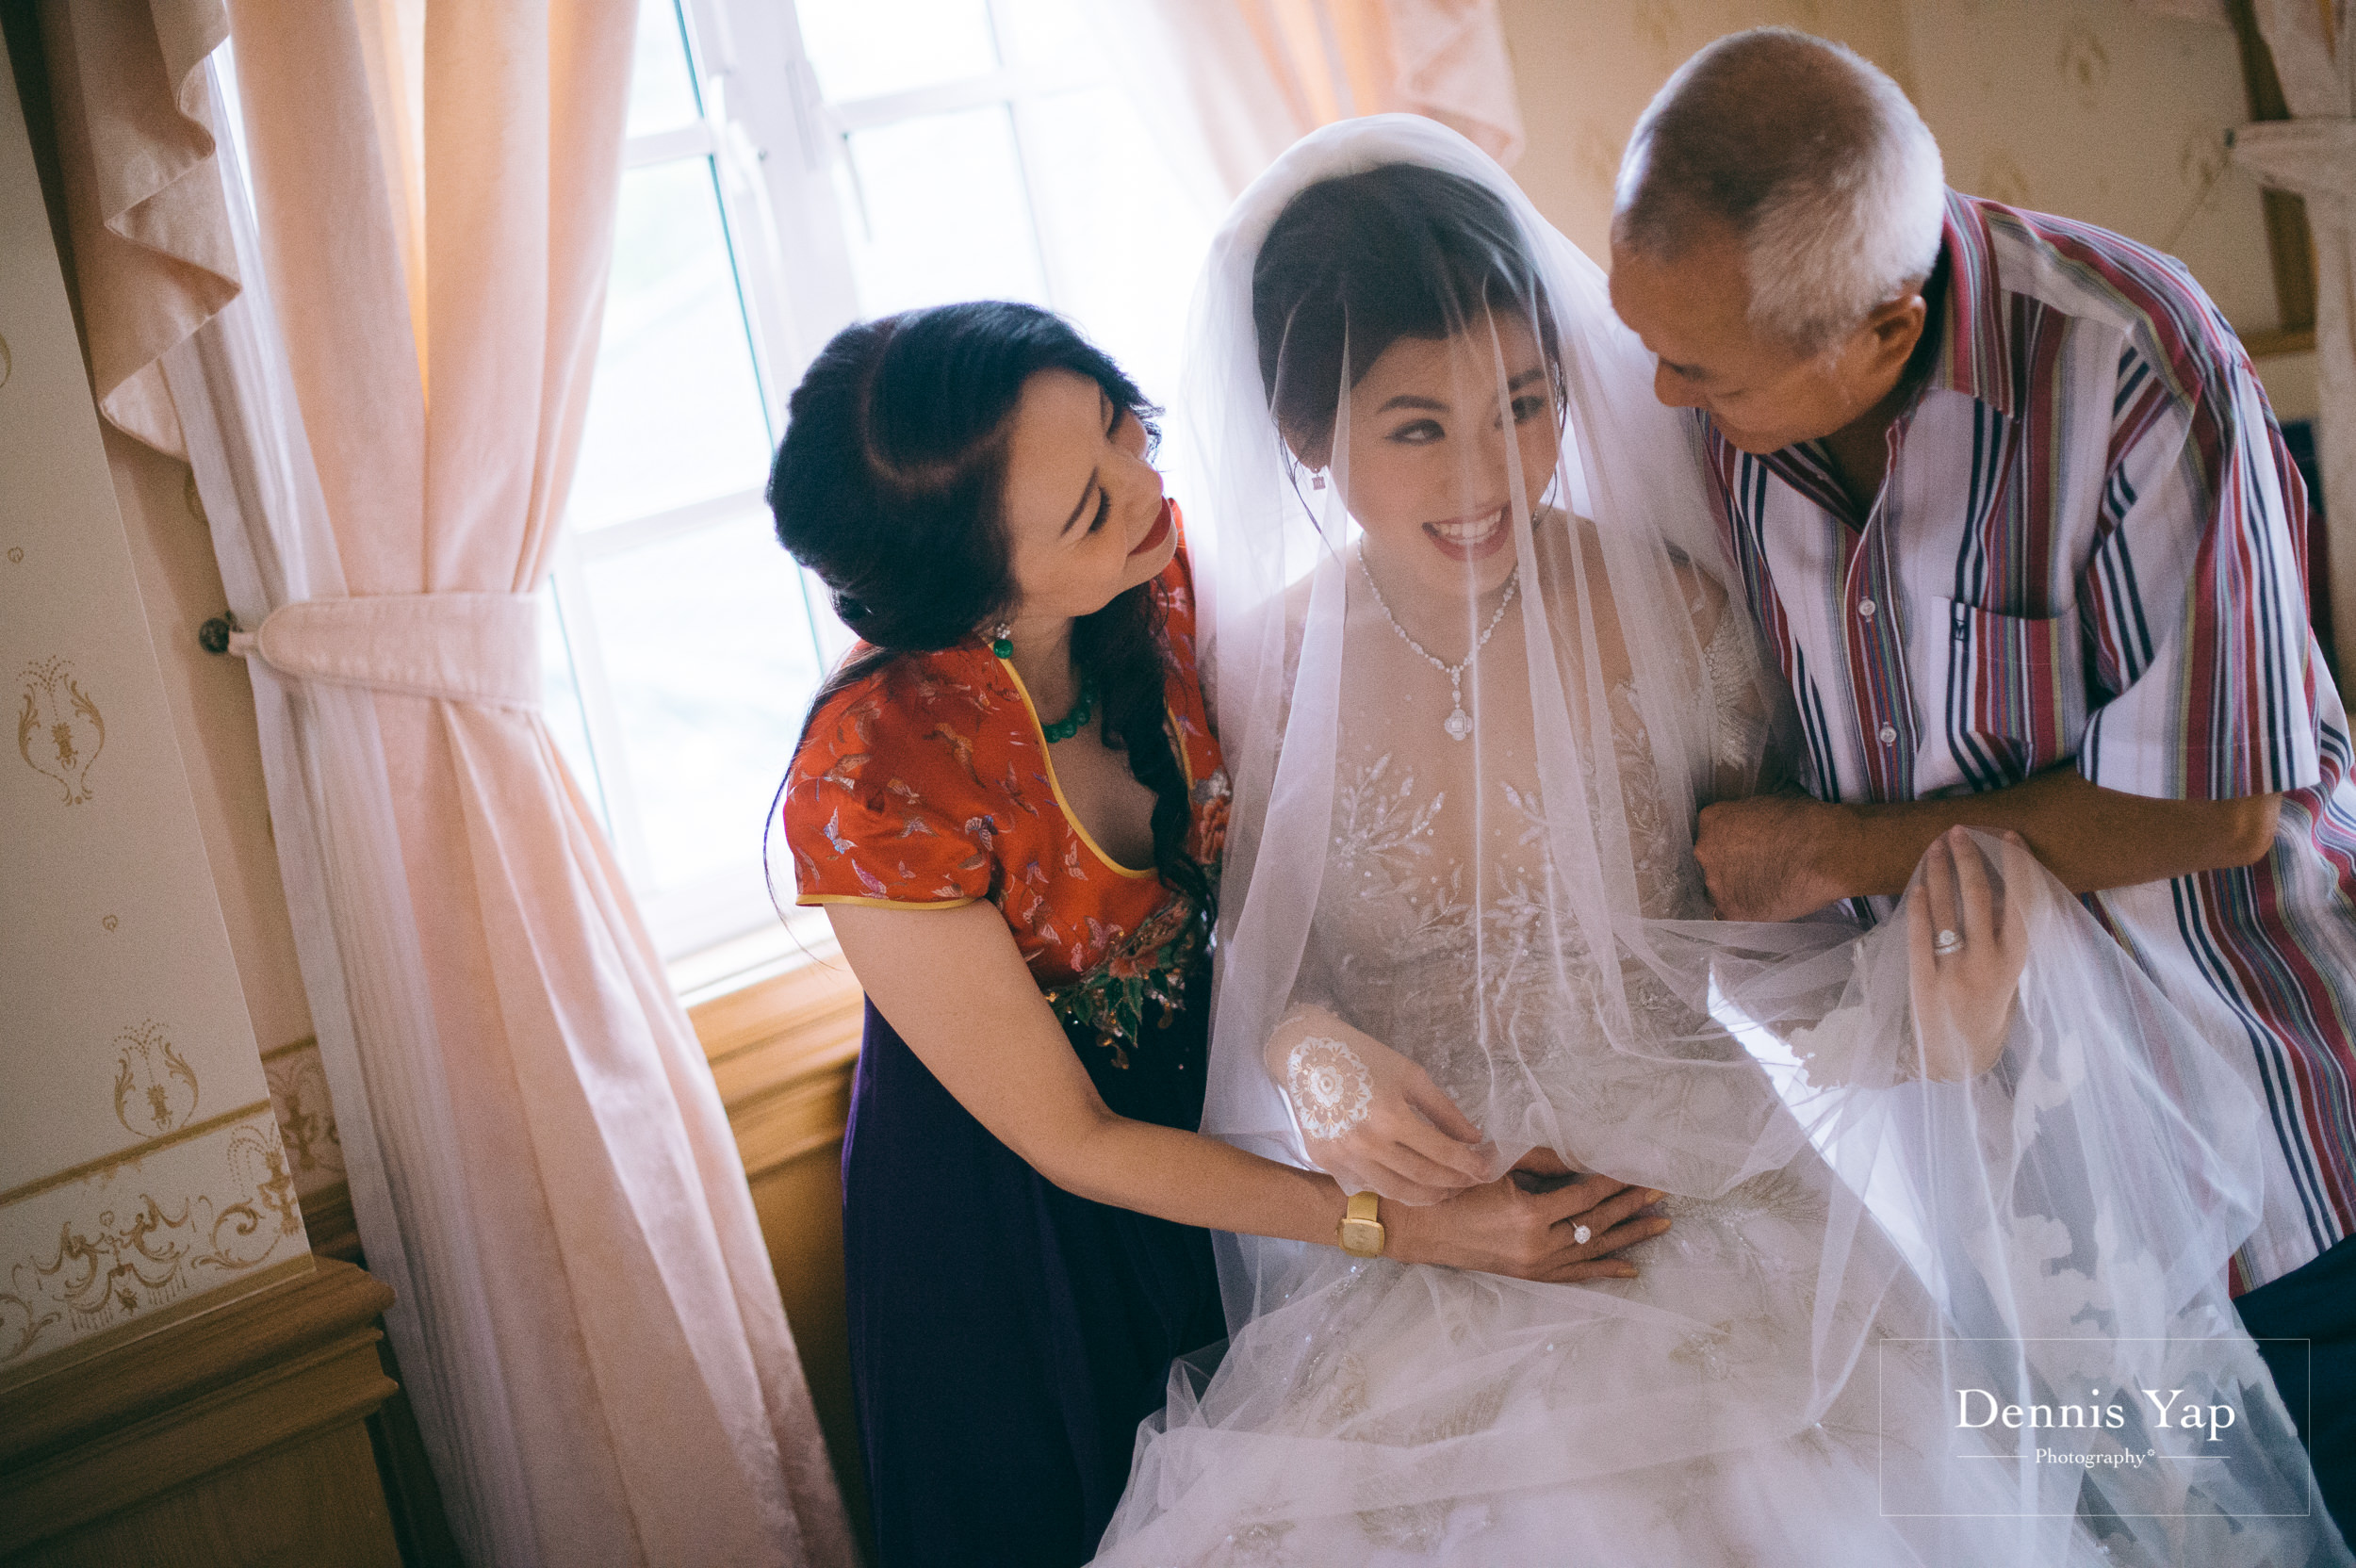 ser siang sze liang wedding day crazy style dennis yap photography malaysia wedding photographer-9.jpg